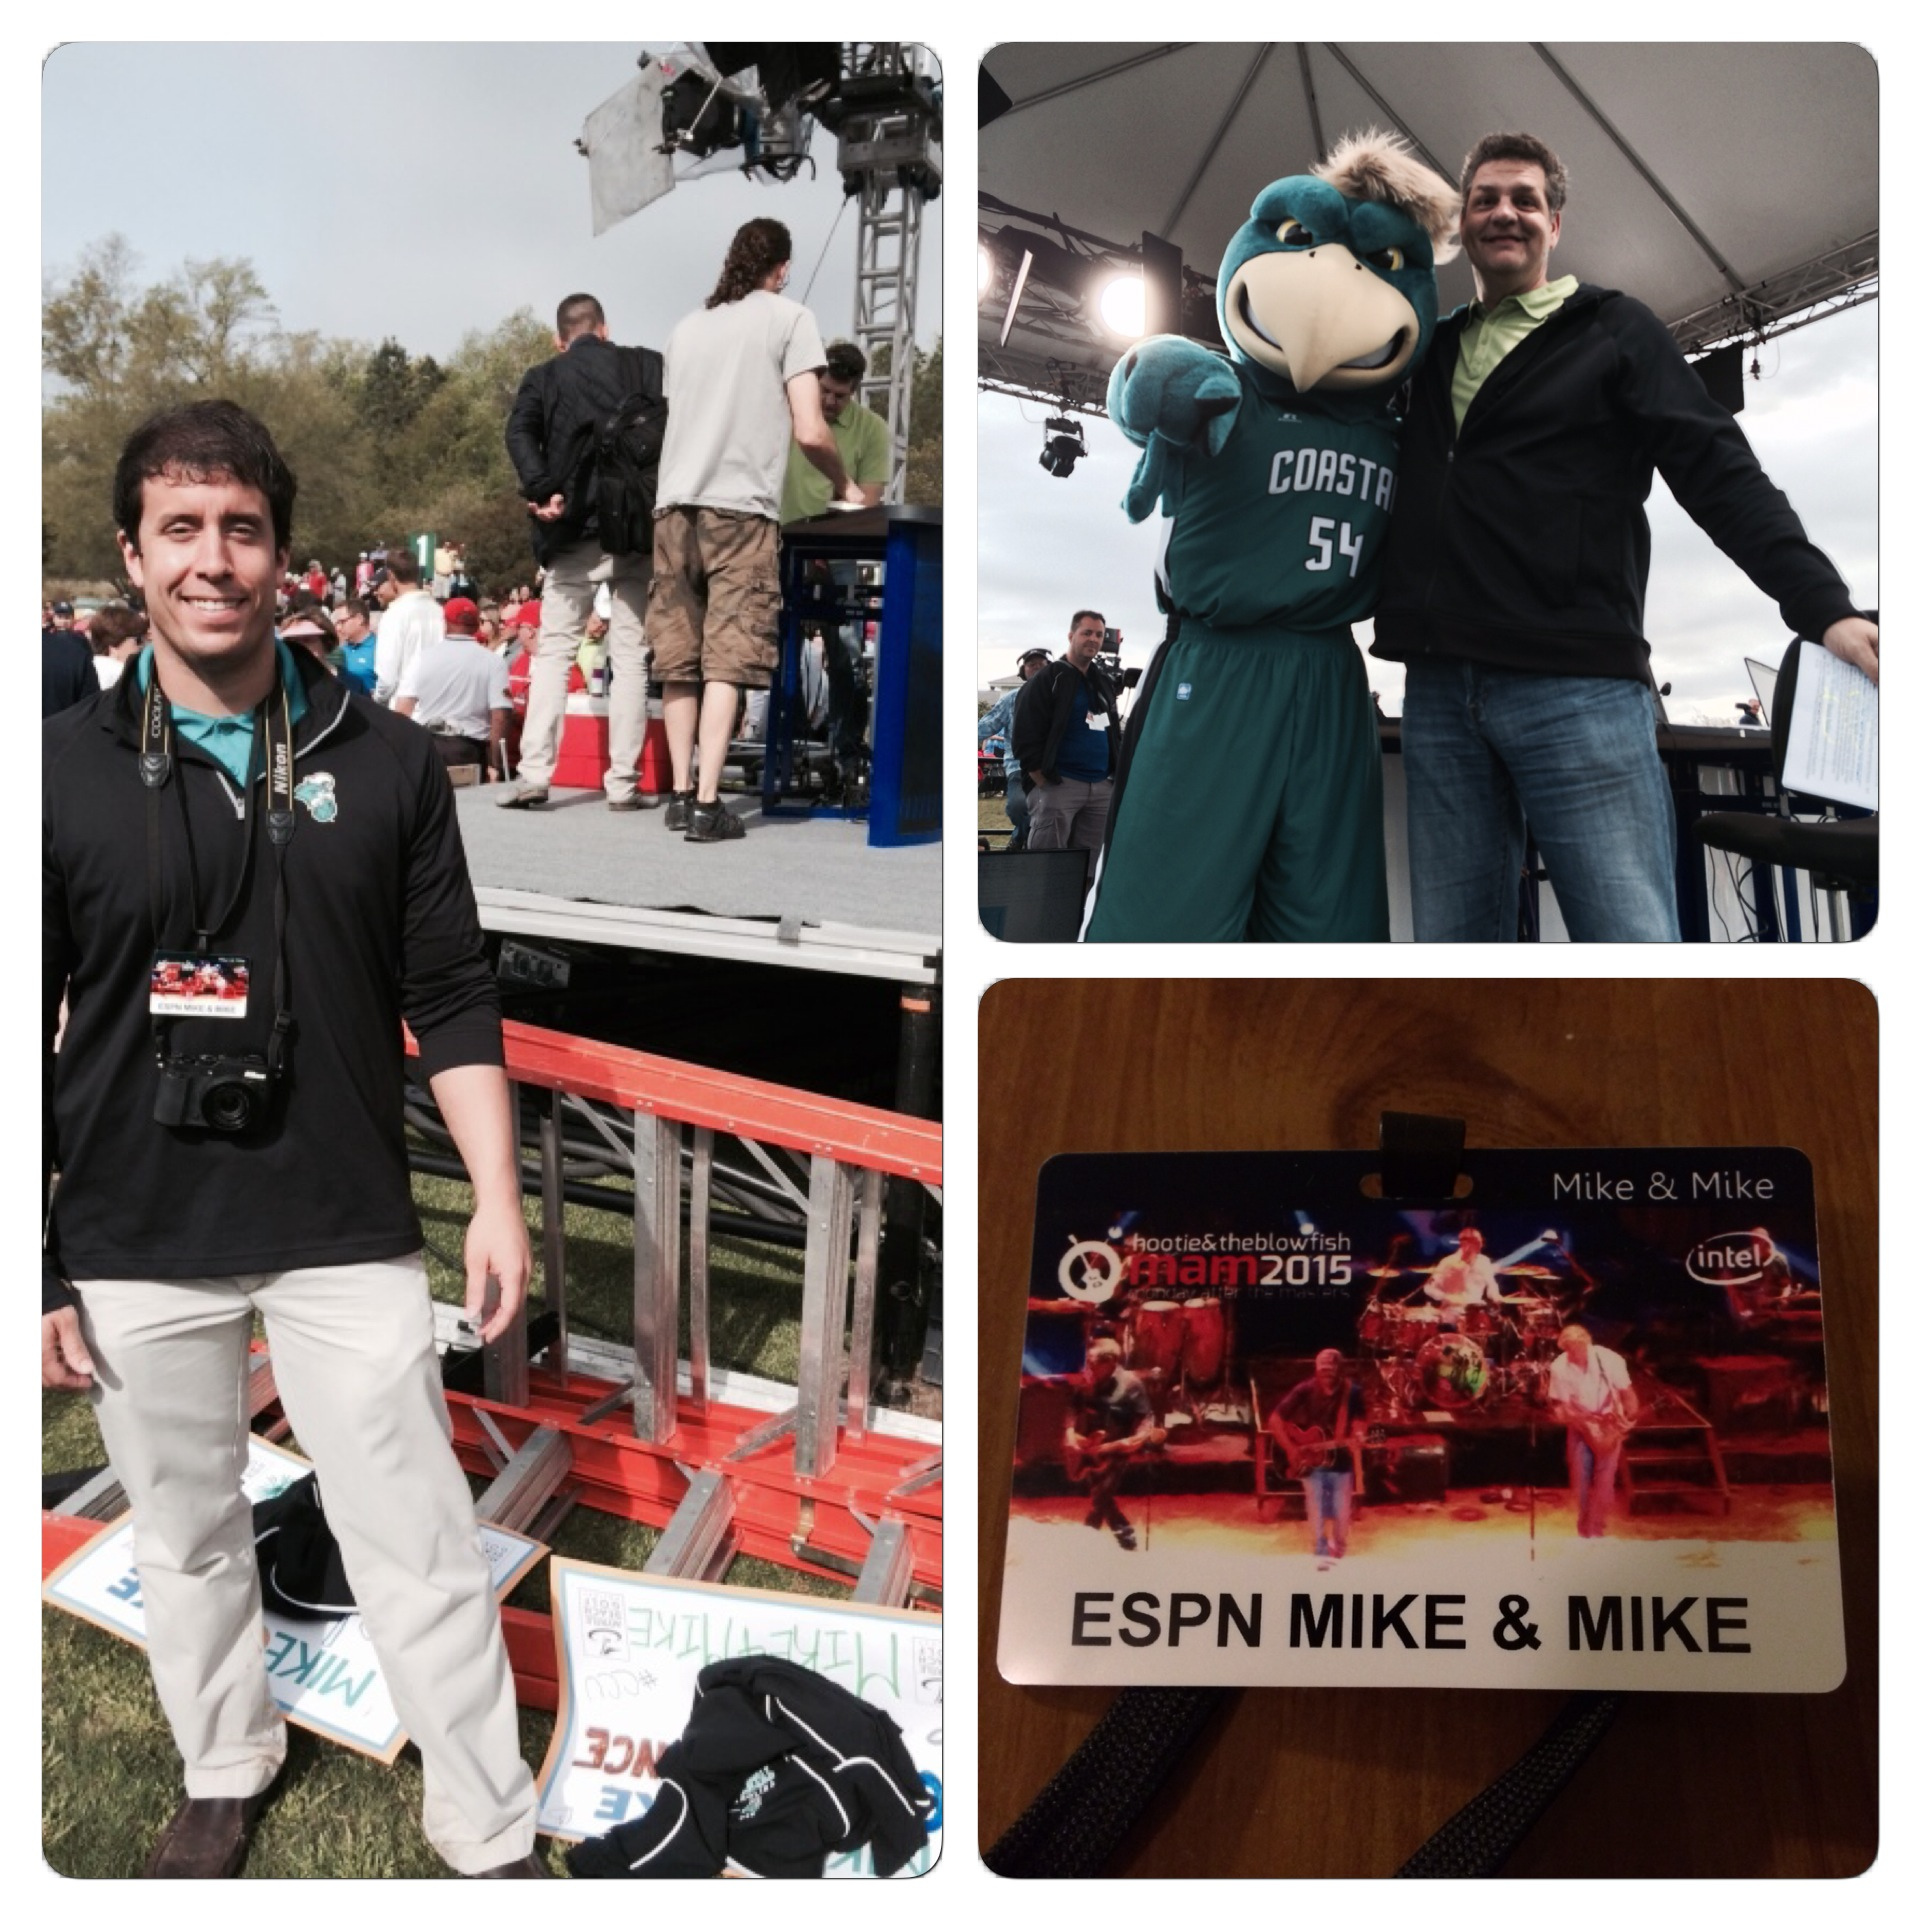 Just a few photos to get started. That is me in front of the set (you can see Golic), a photo I took of Golic and Chauncey that the show actually used for its own social media purposes, and my credential.